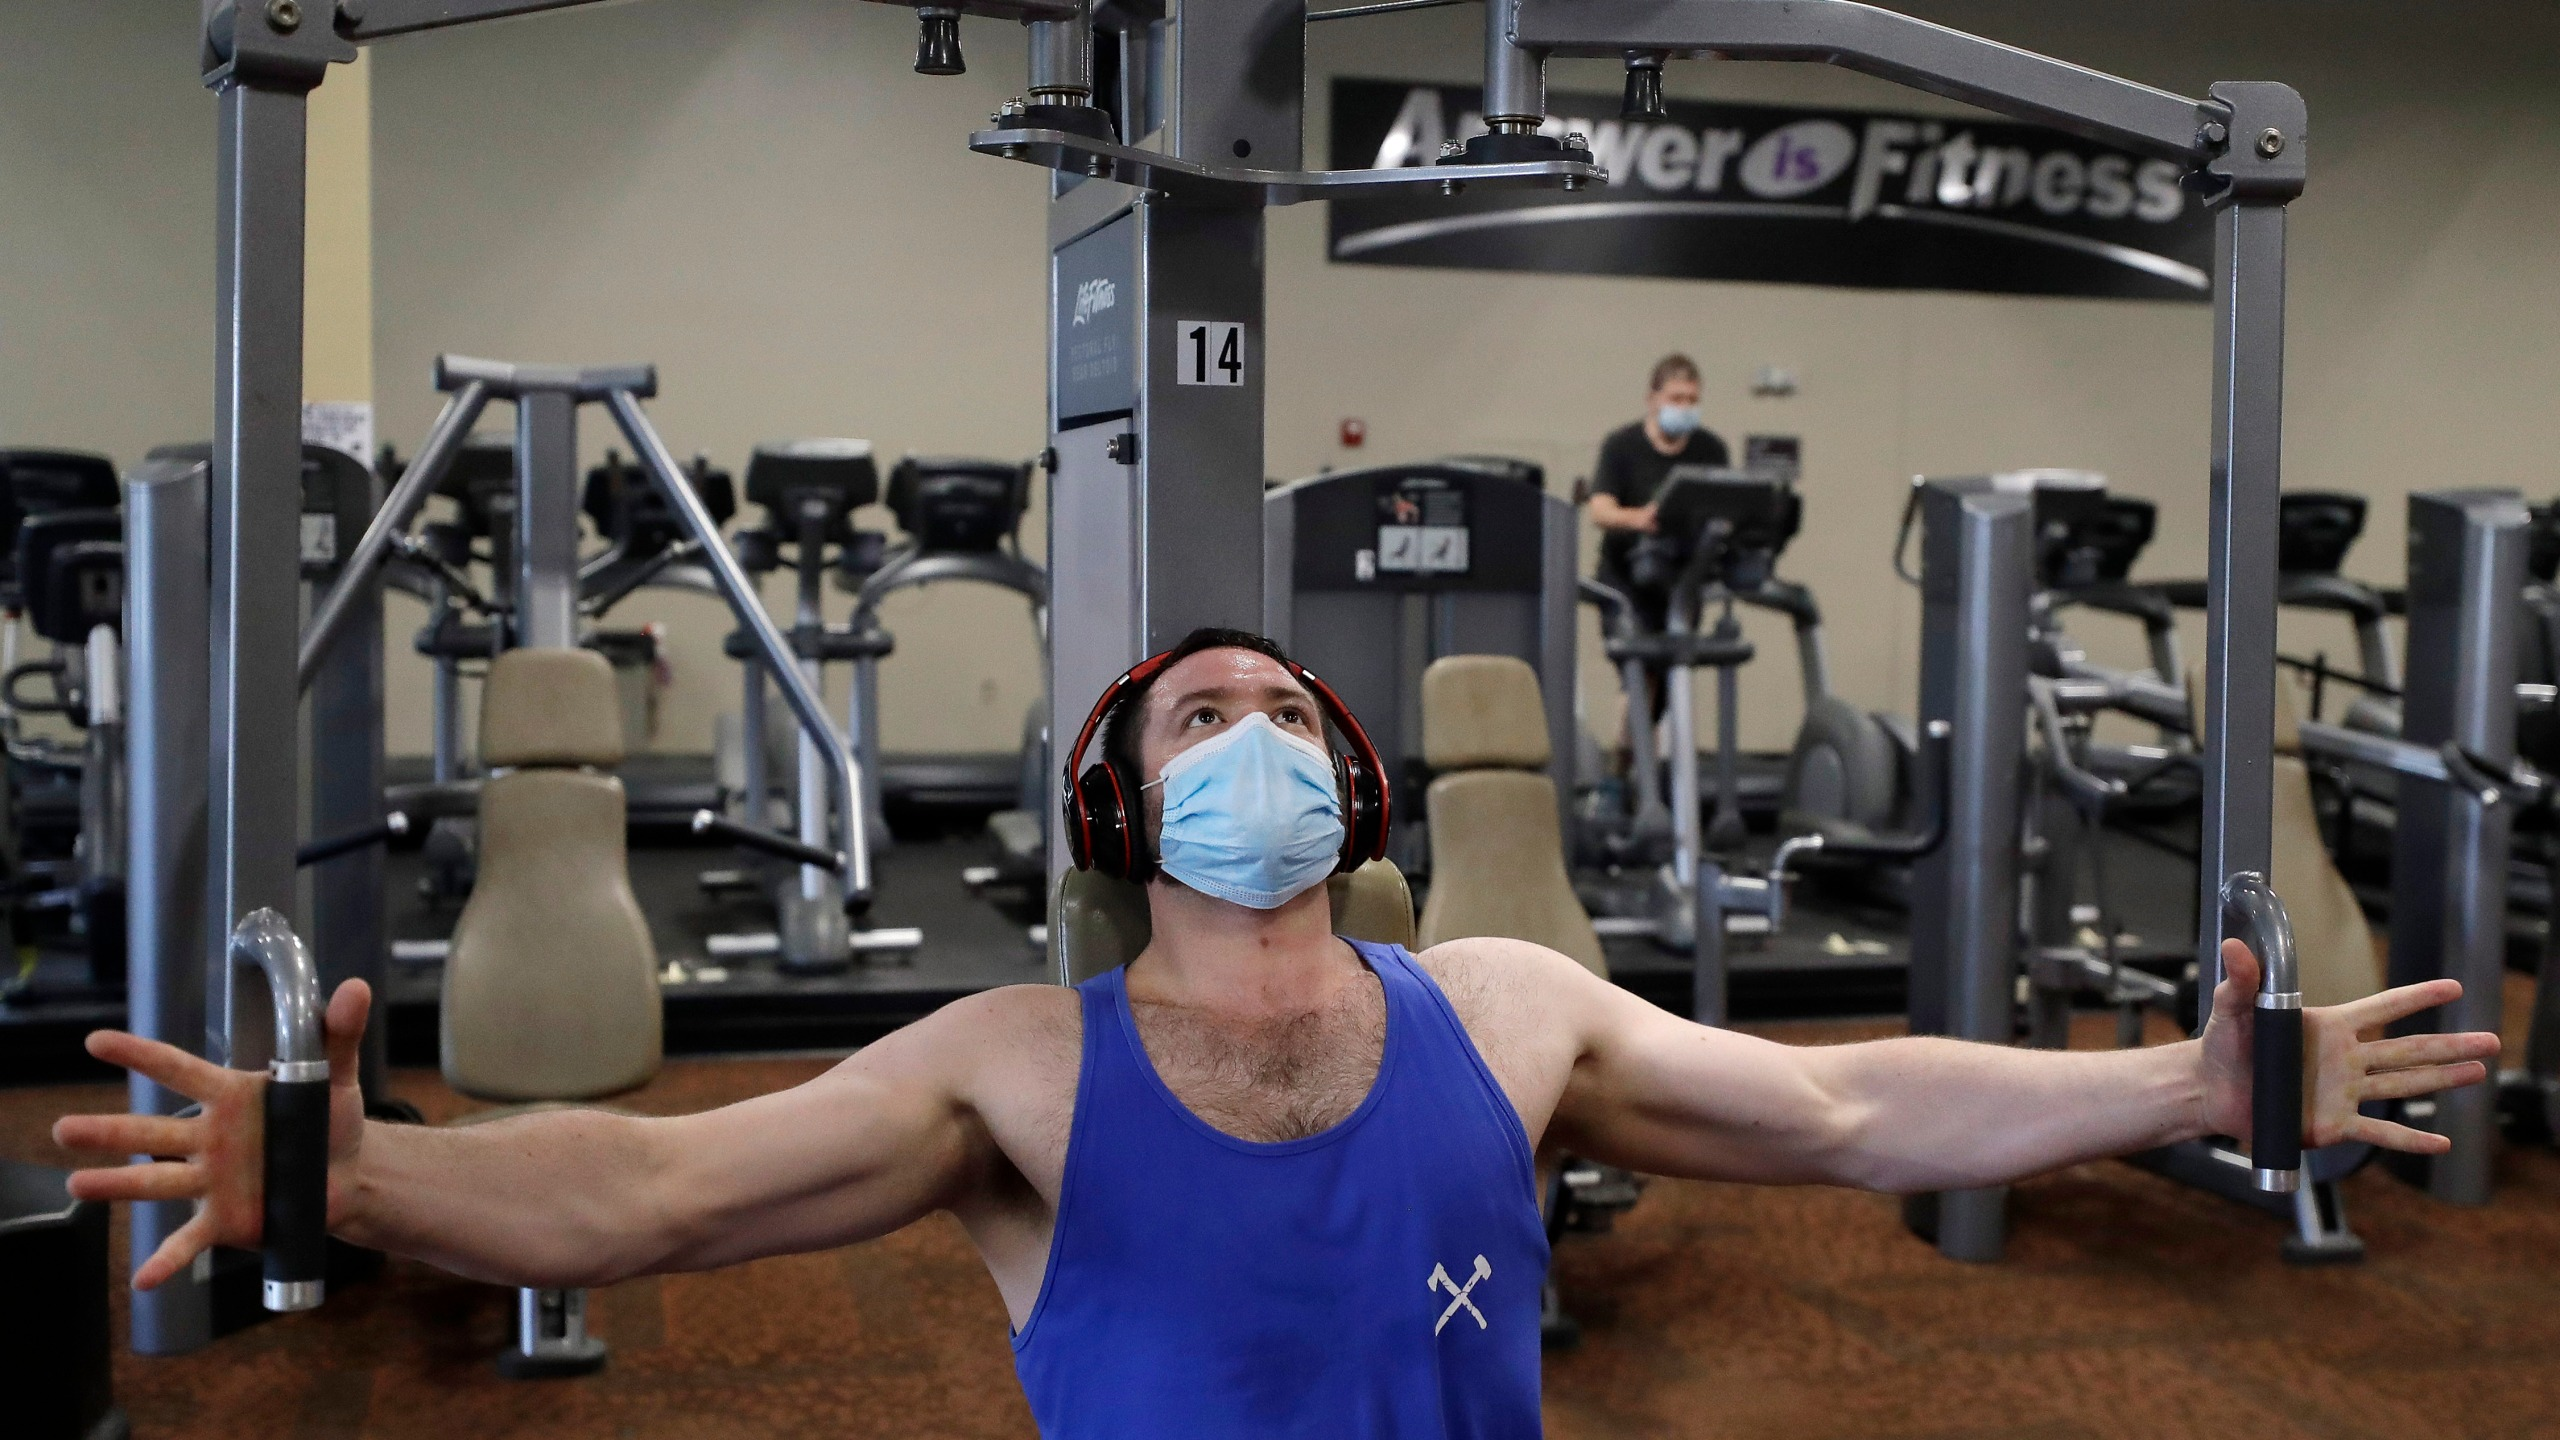 Eased capacity restrictions at Texas gyms